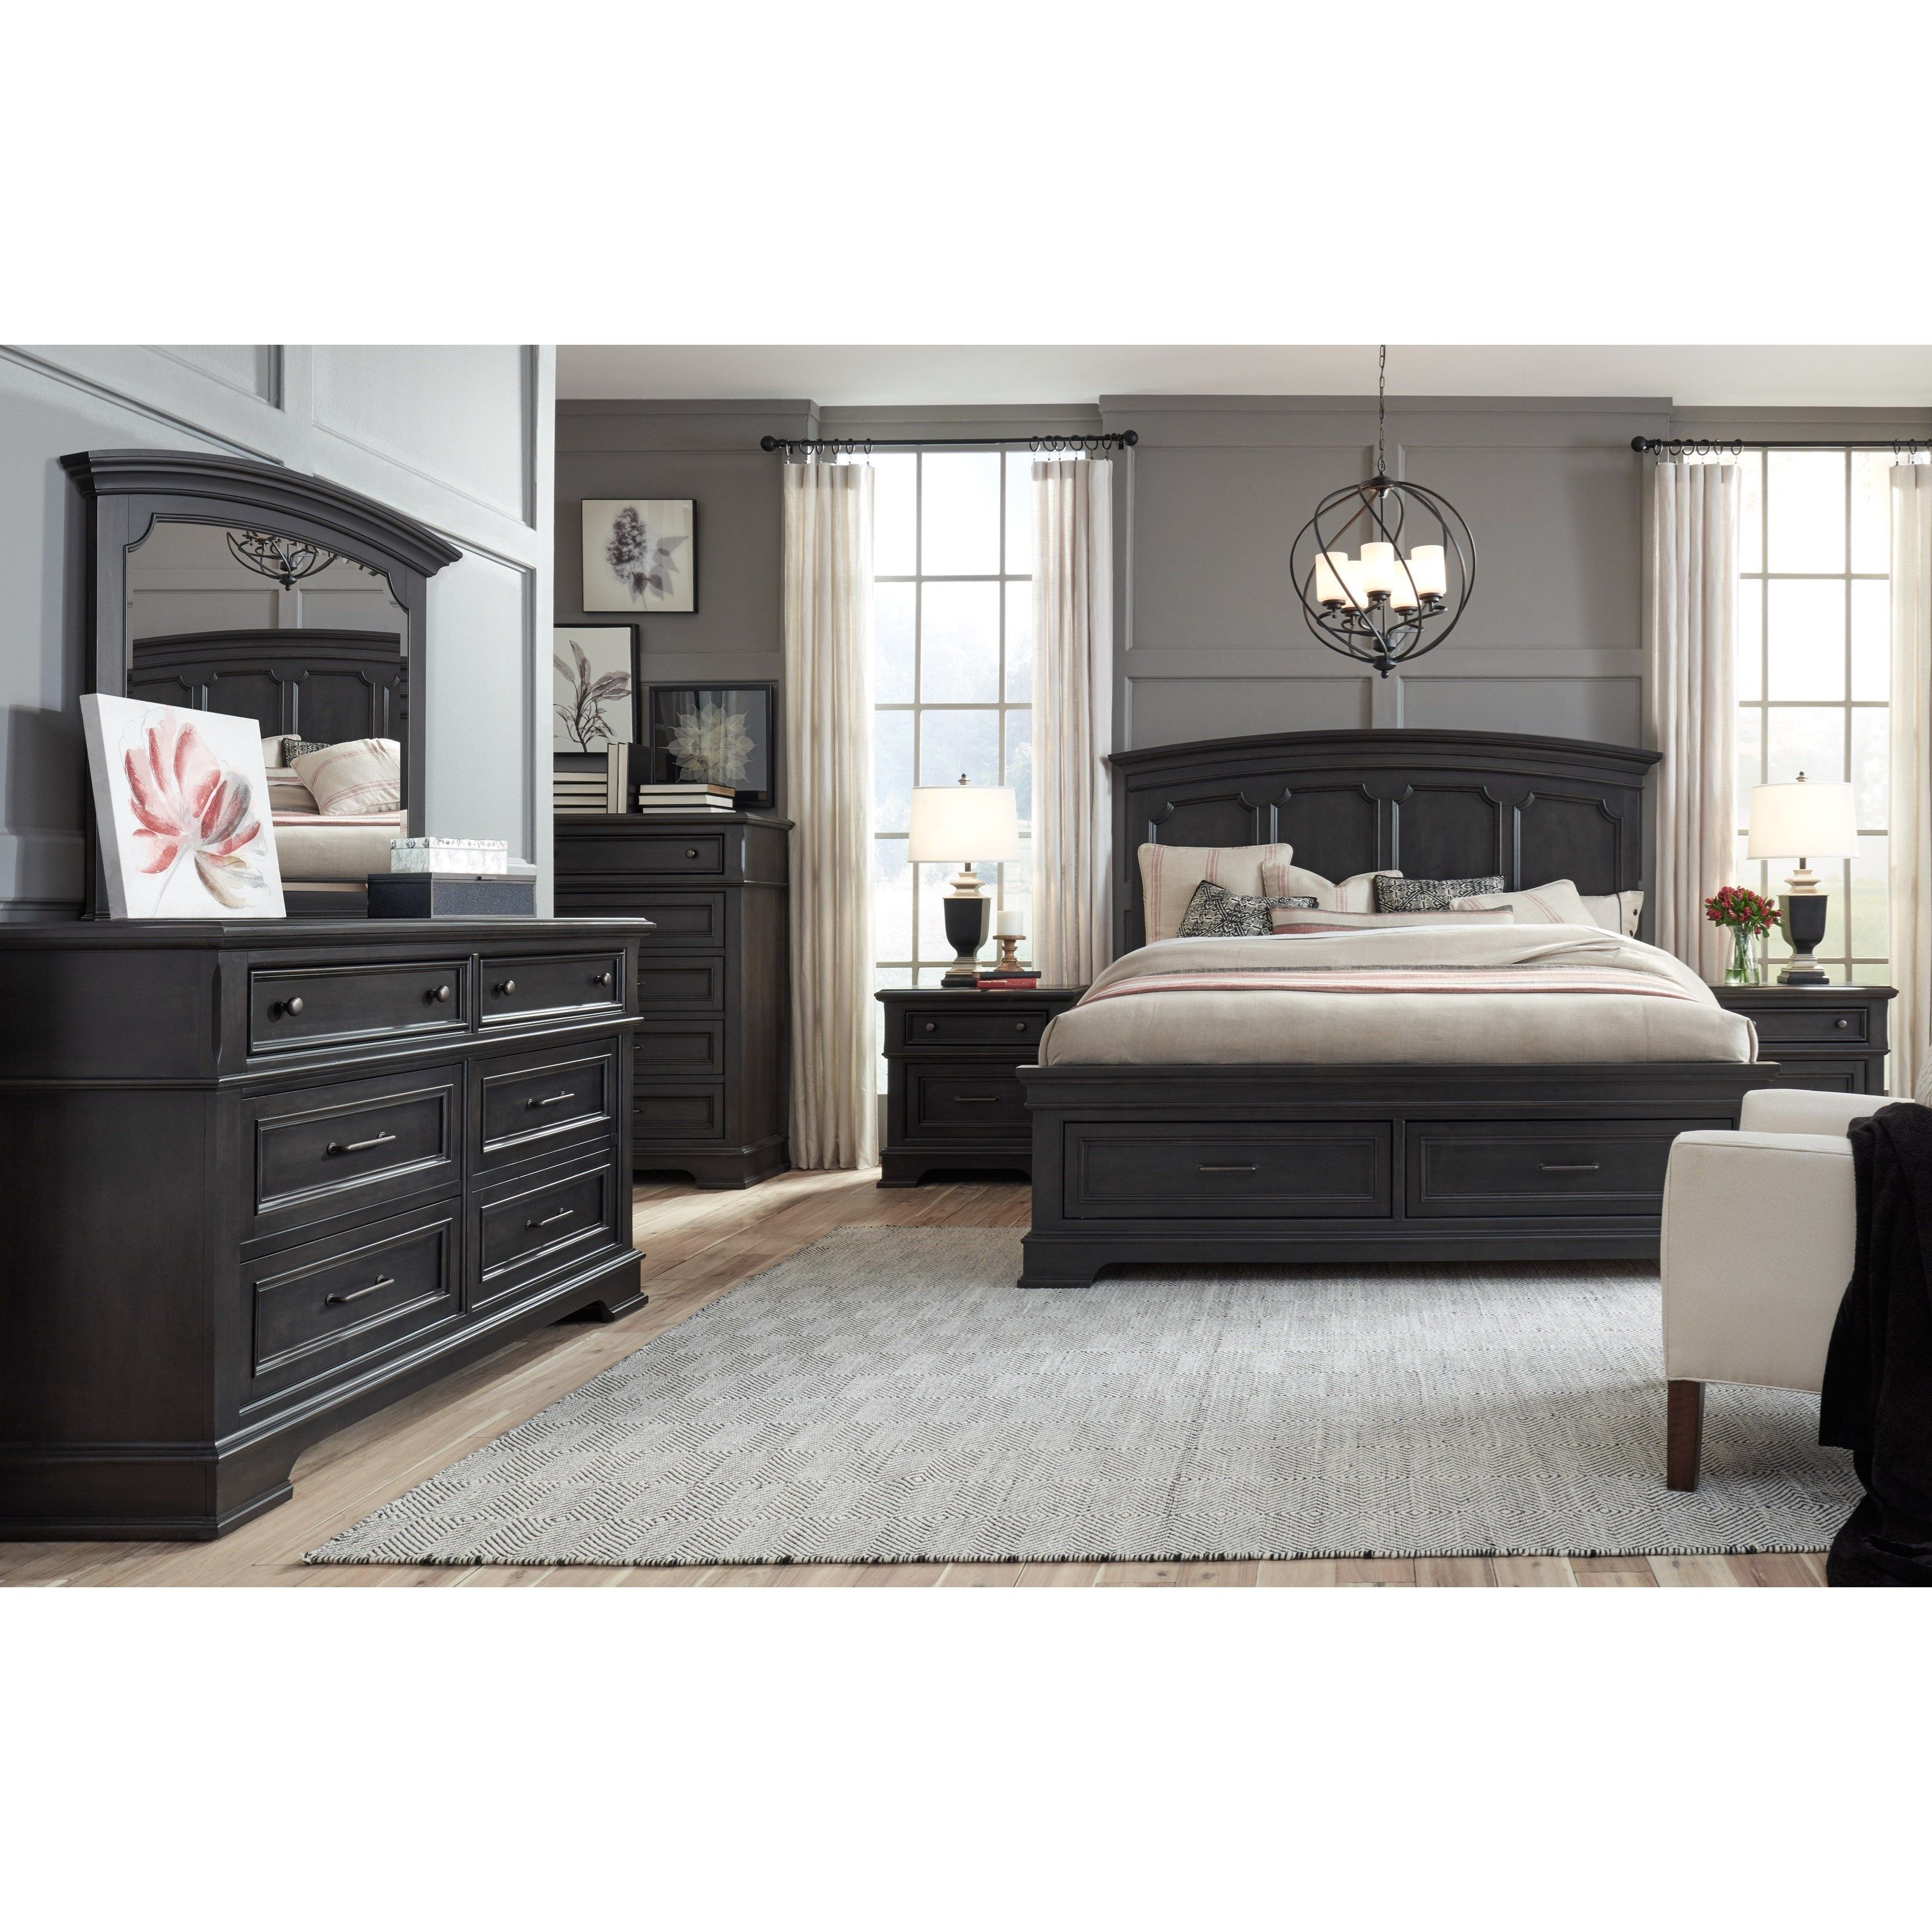 Townsend King Bedroom Group By Legacy Classic At Belfort Furniture